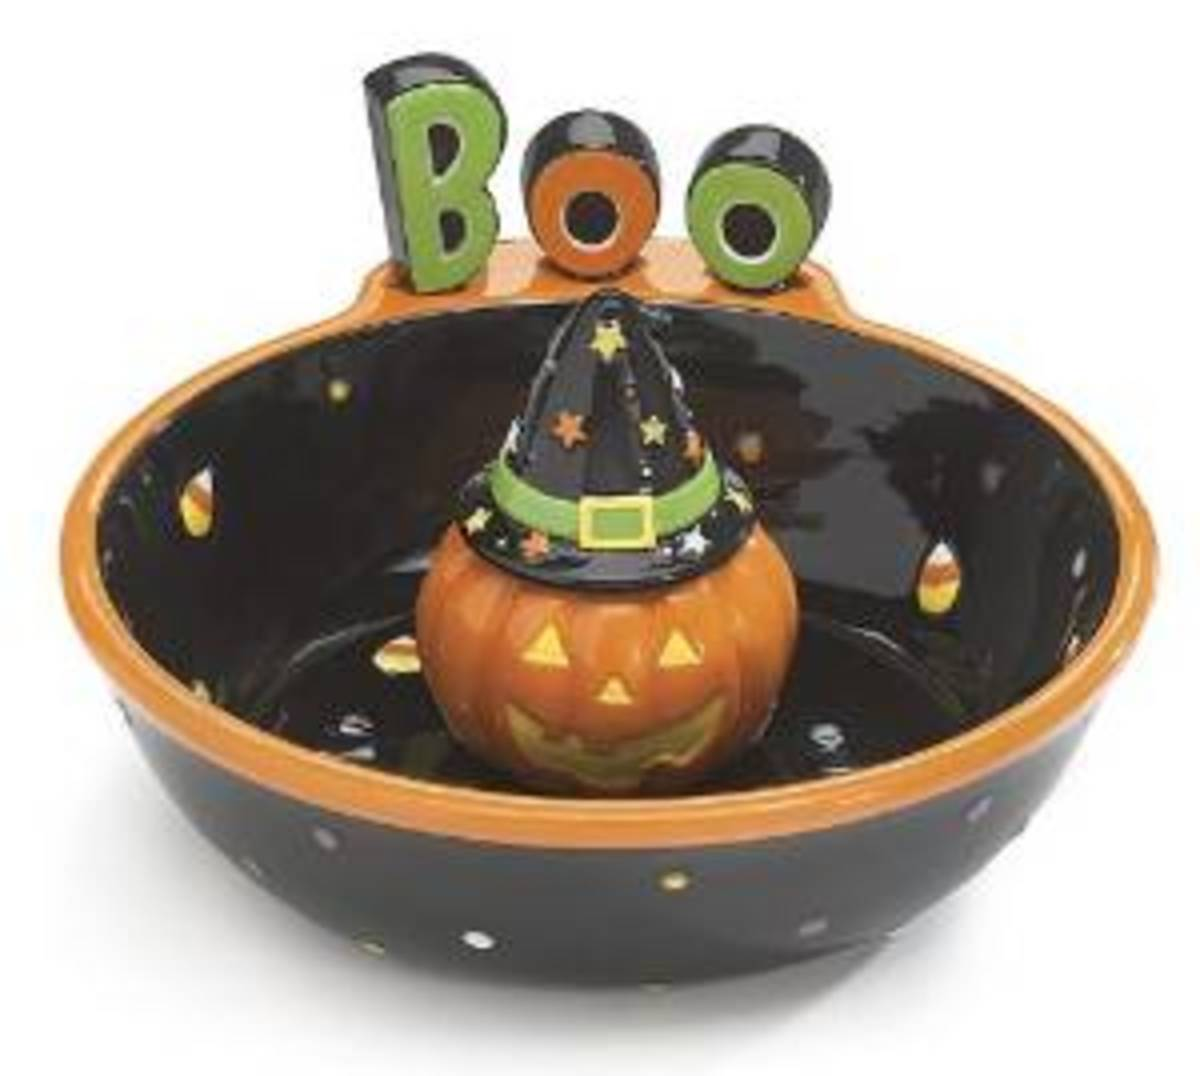 Ghoulish Halloween Dip Recipes